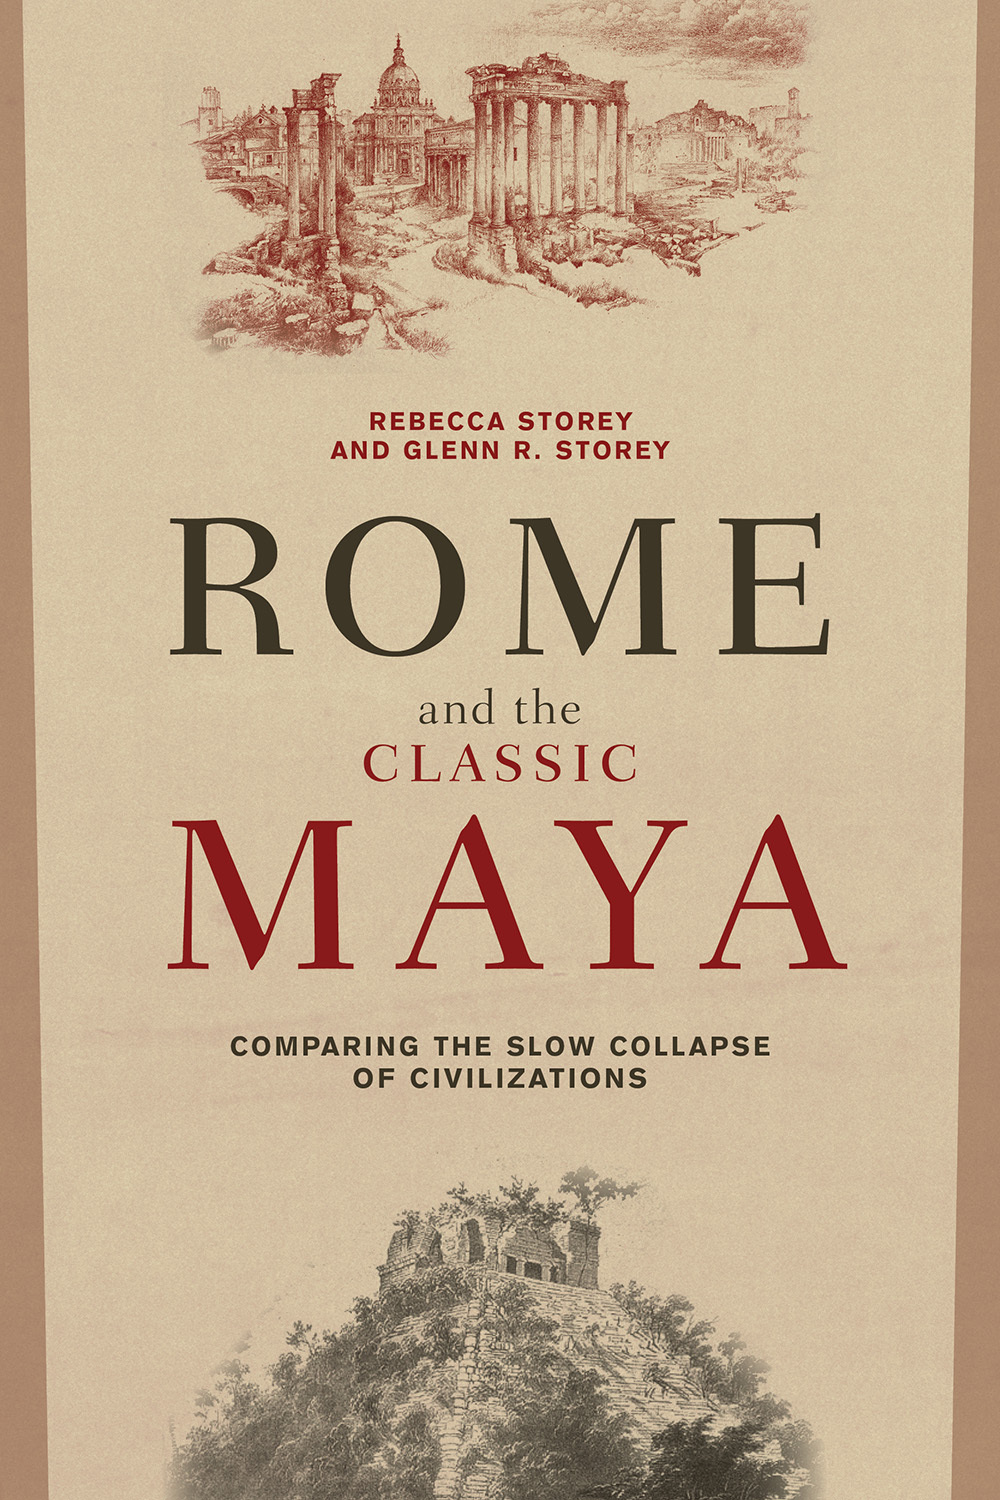 Rome and the Classic Maya Comparing the Slow Collapse of Civilizations